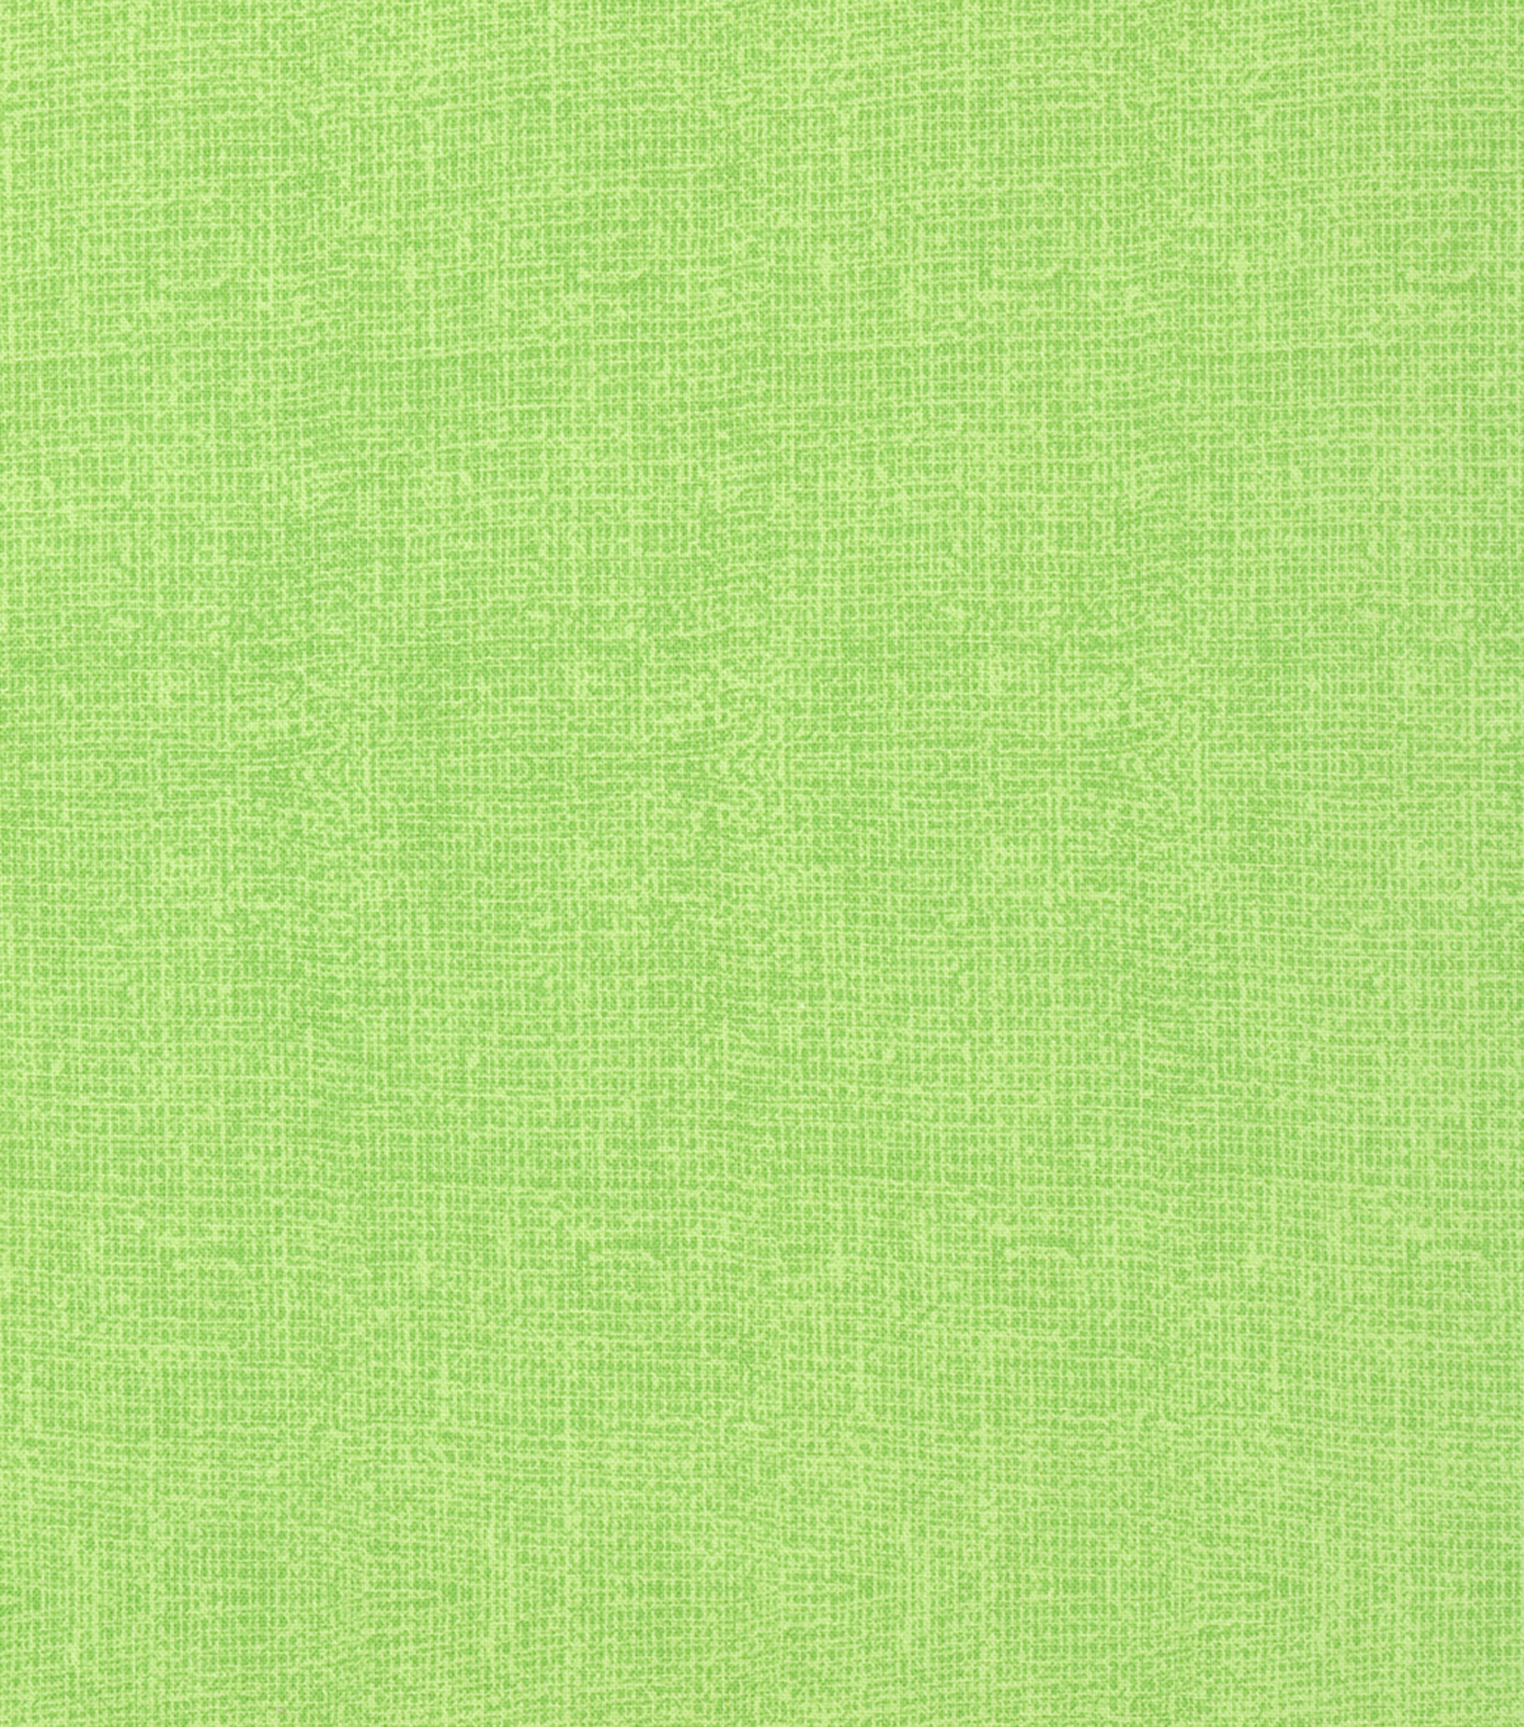 Keepsake Calico Cotton Fabric -Green